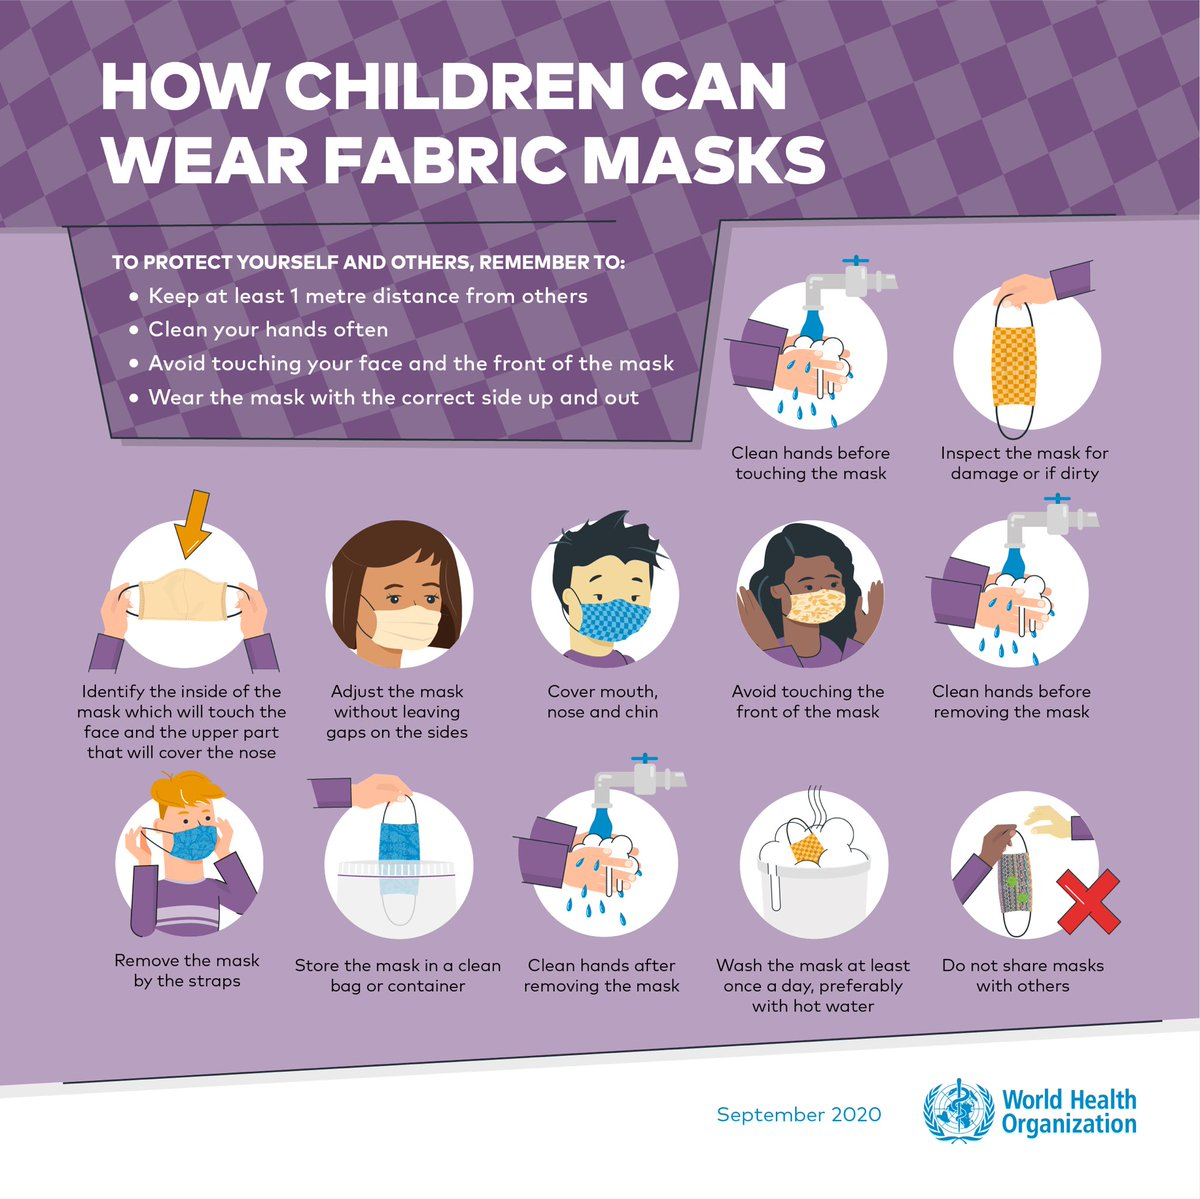 This is how children can #WearAMask properly 😷  Read more about children & masks in relation to #COVID19 👉